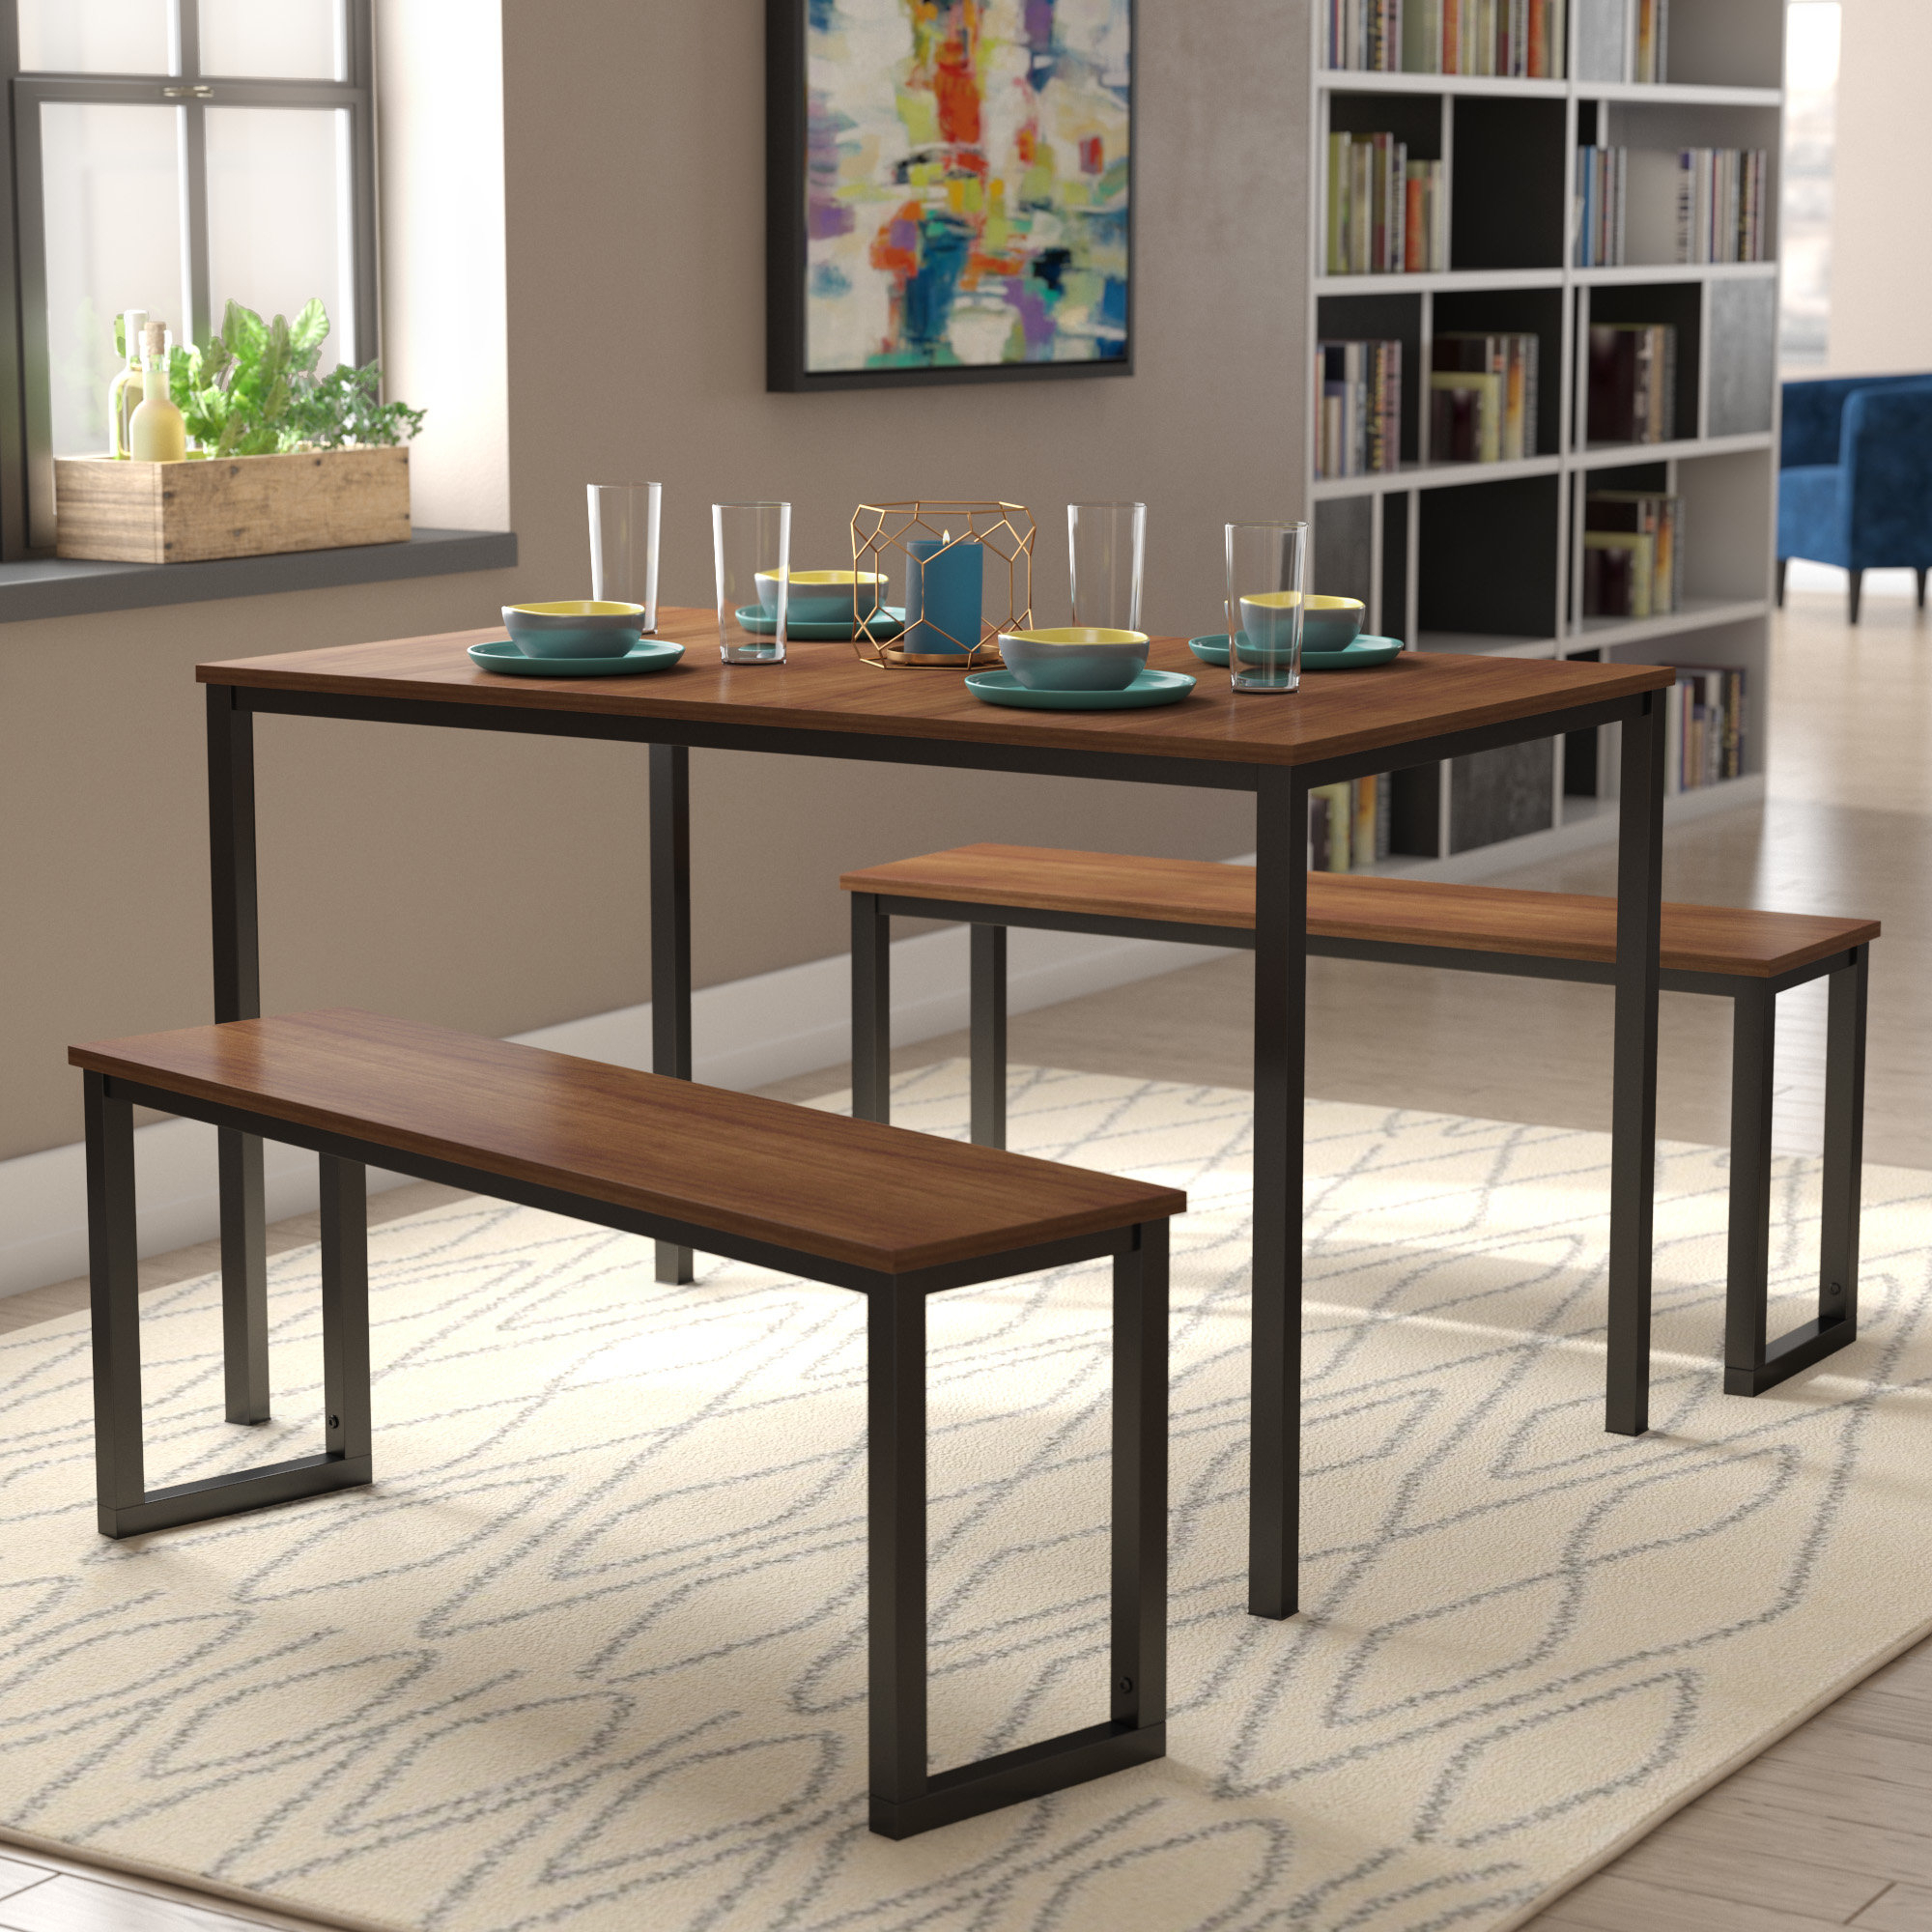 Frida 3 Piece Dining Table Set Inside Well Known Frida 3 Piece Dining Table Sets (Gallery 3 of 20)